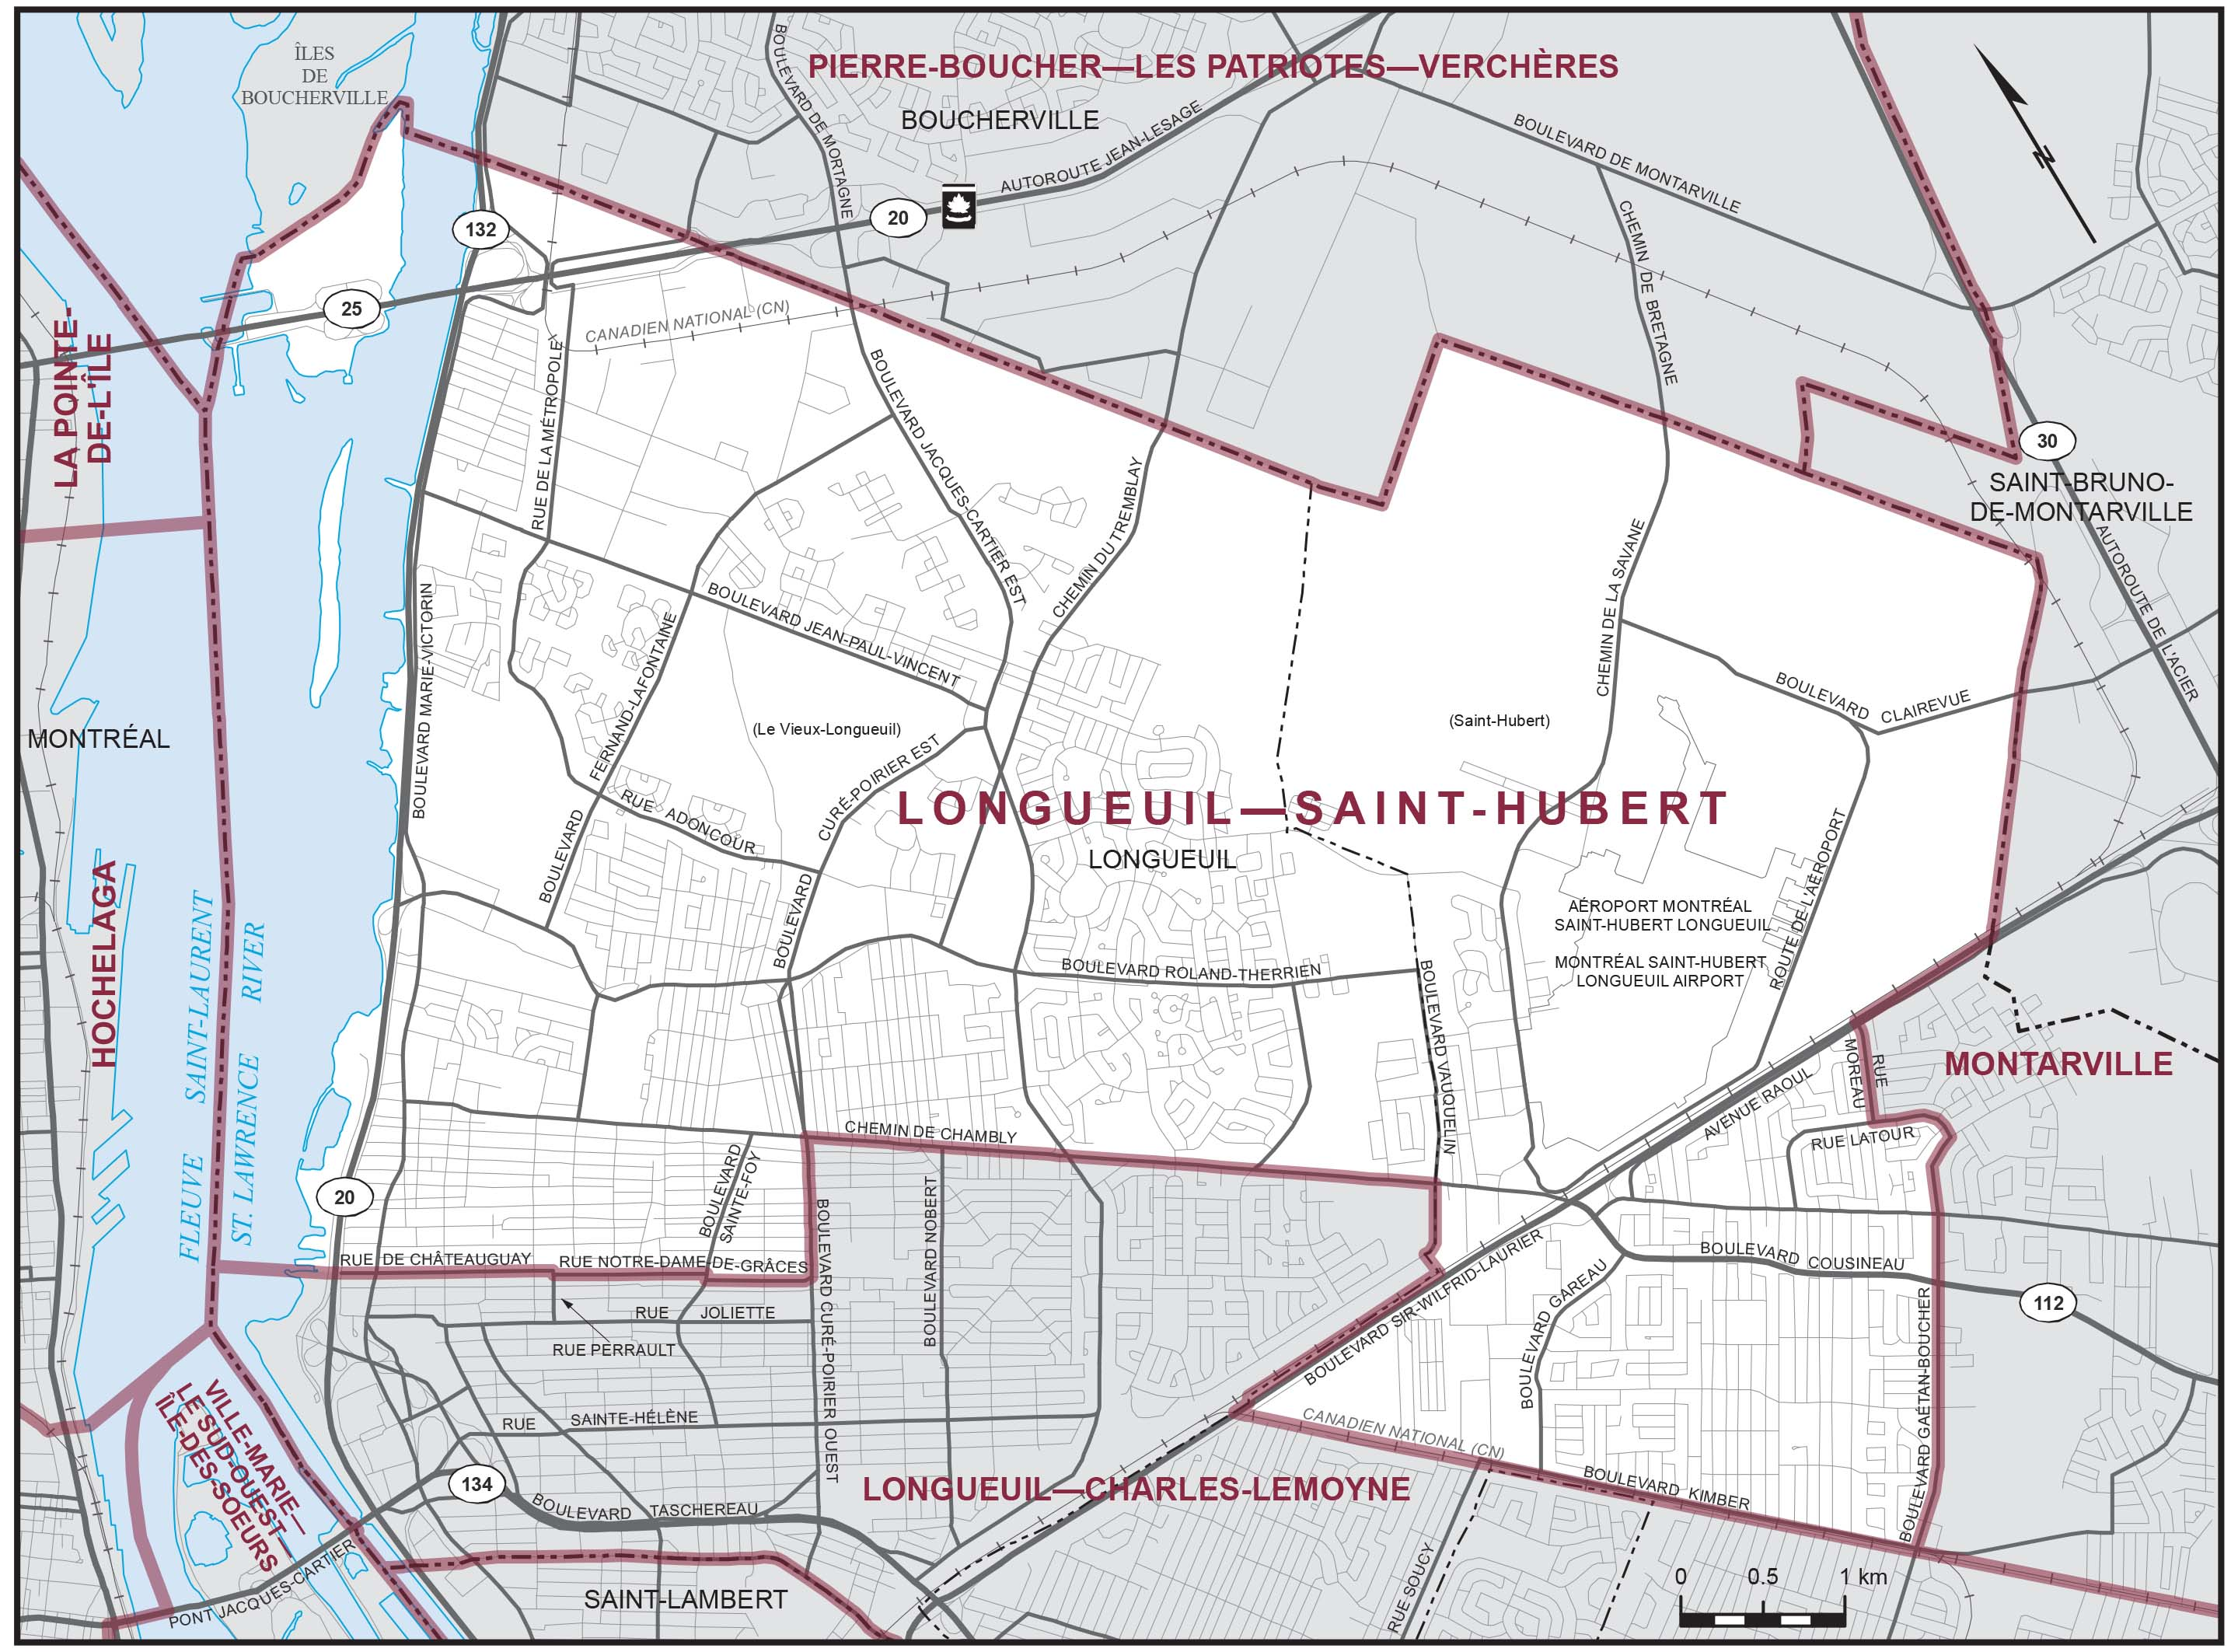 Map: Longueuil--Saint-Hubert, Federal electoral district, 2013 Representation Order (in white), Quebec